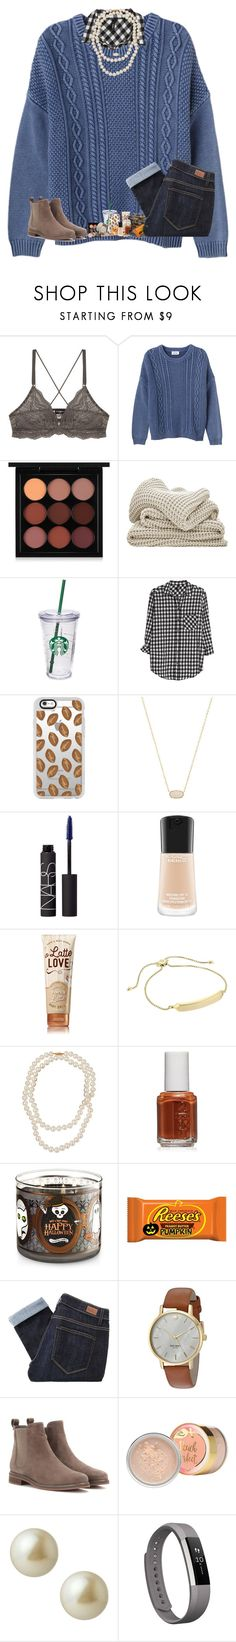 """""""this tbh app is so interesting"""" by rileykleiin ❤ liked on Polyvore featuring Cosabella, Monki, MAC Cosmetics, Starbucks, MANGO, Casetify, Kendra Scott, NARS Cosmetics, Vera Bradley and Belpearl"""